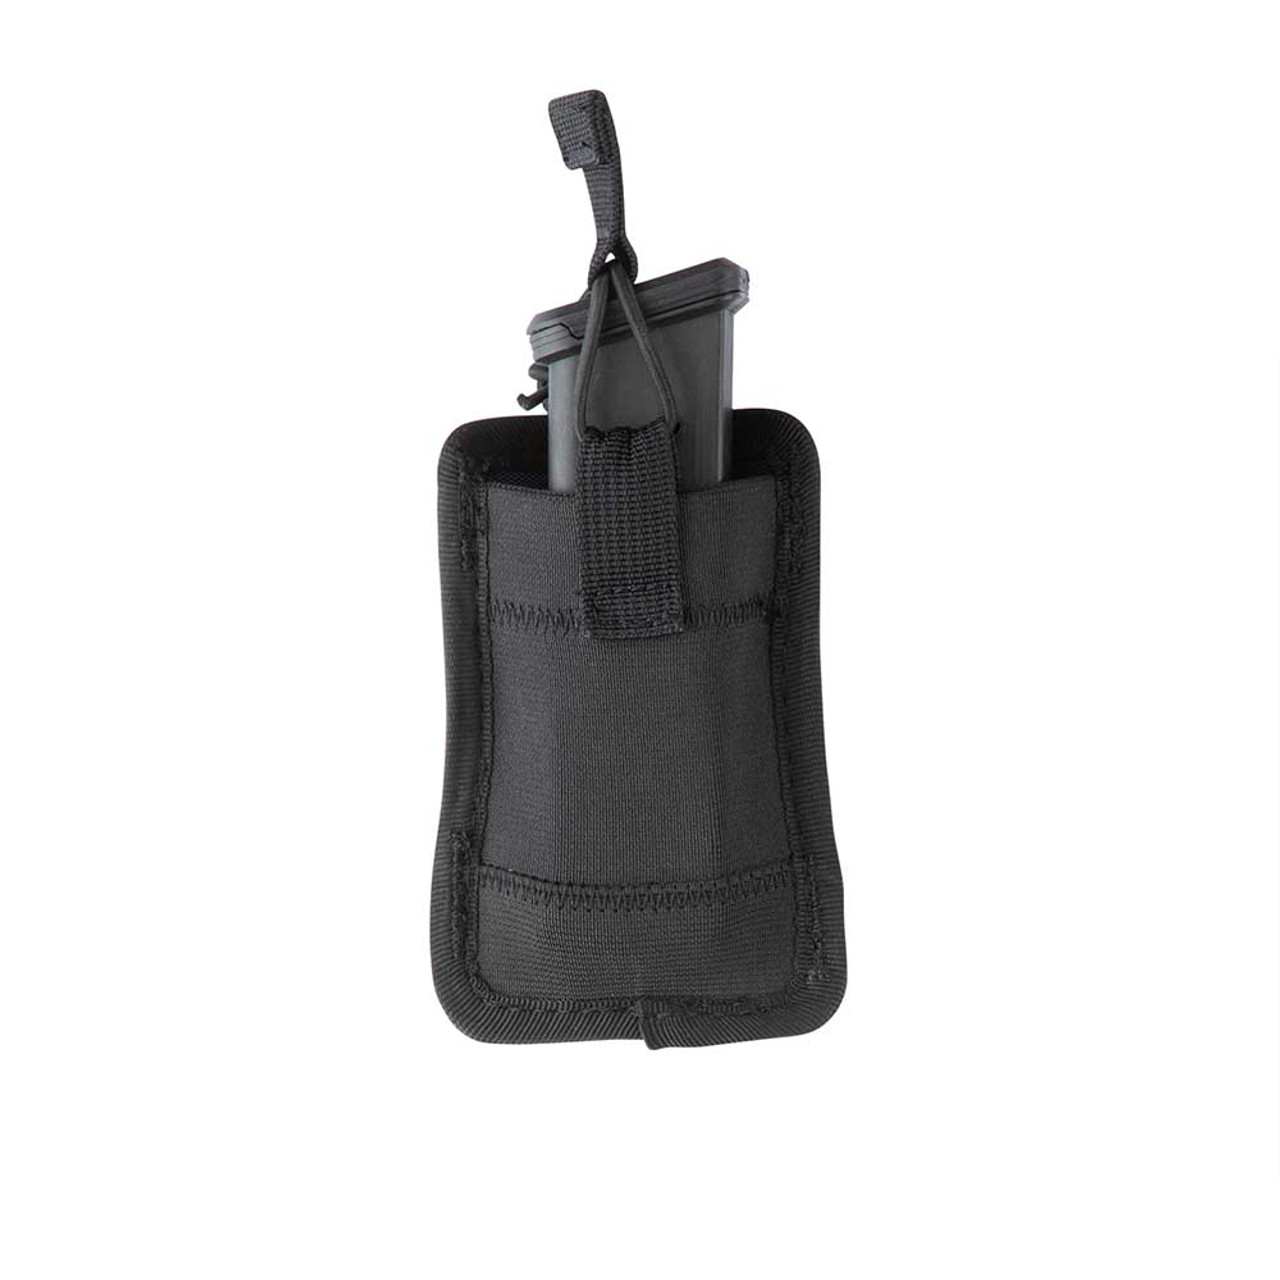 Vertx Dolos Single Pistol Mag Pouch